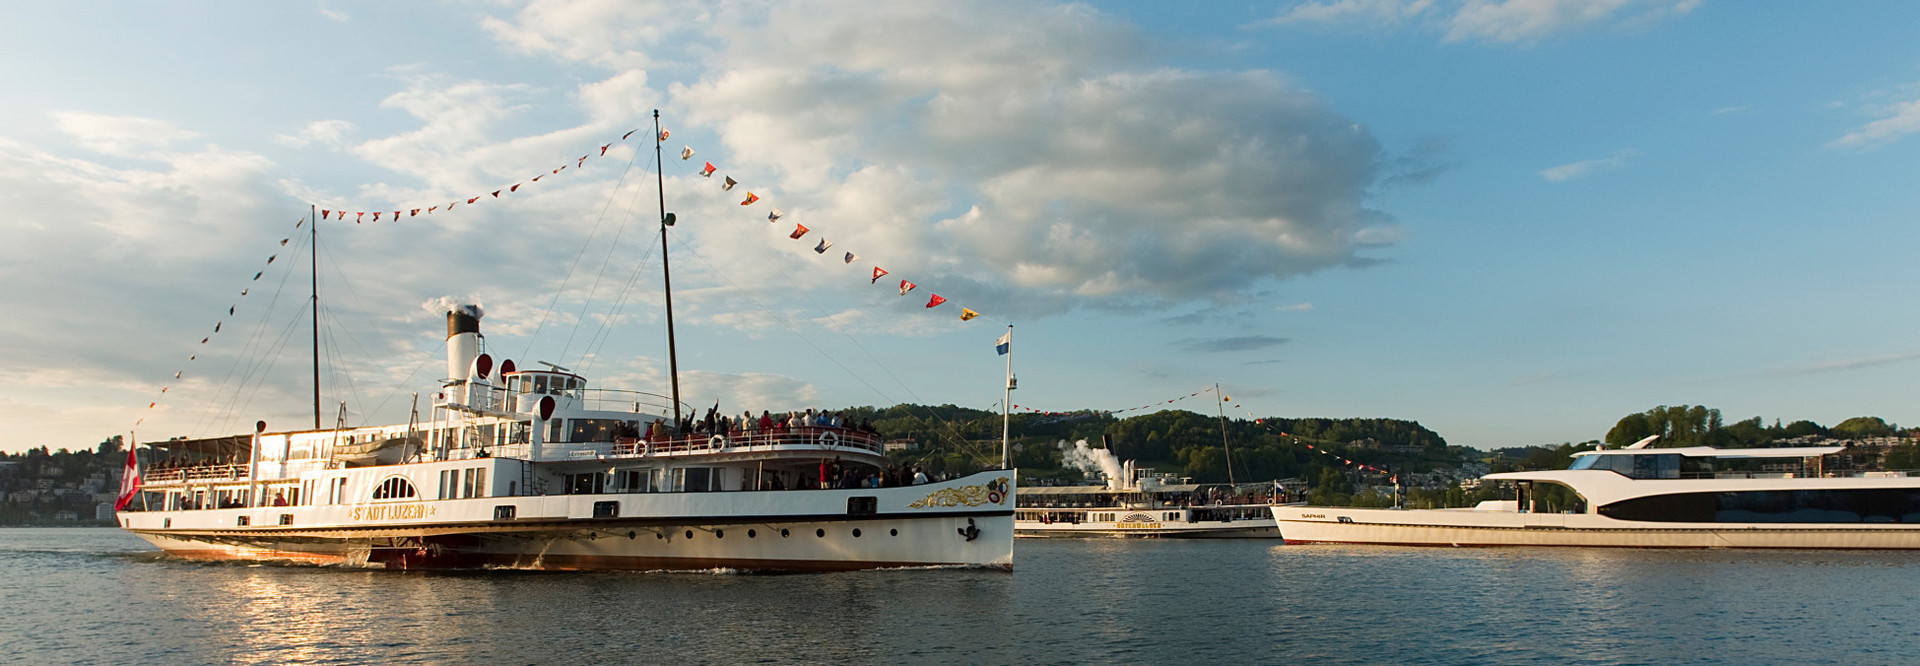 A steamboat and a motor vessel cross each other on Lake Lucerne.